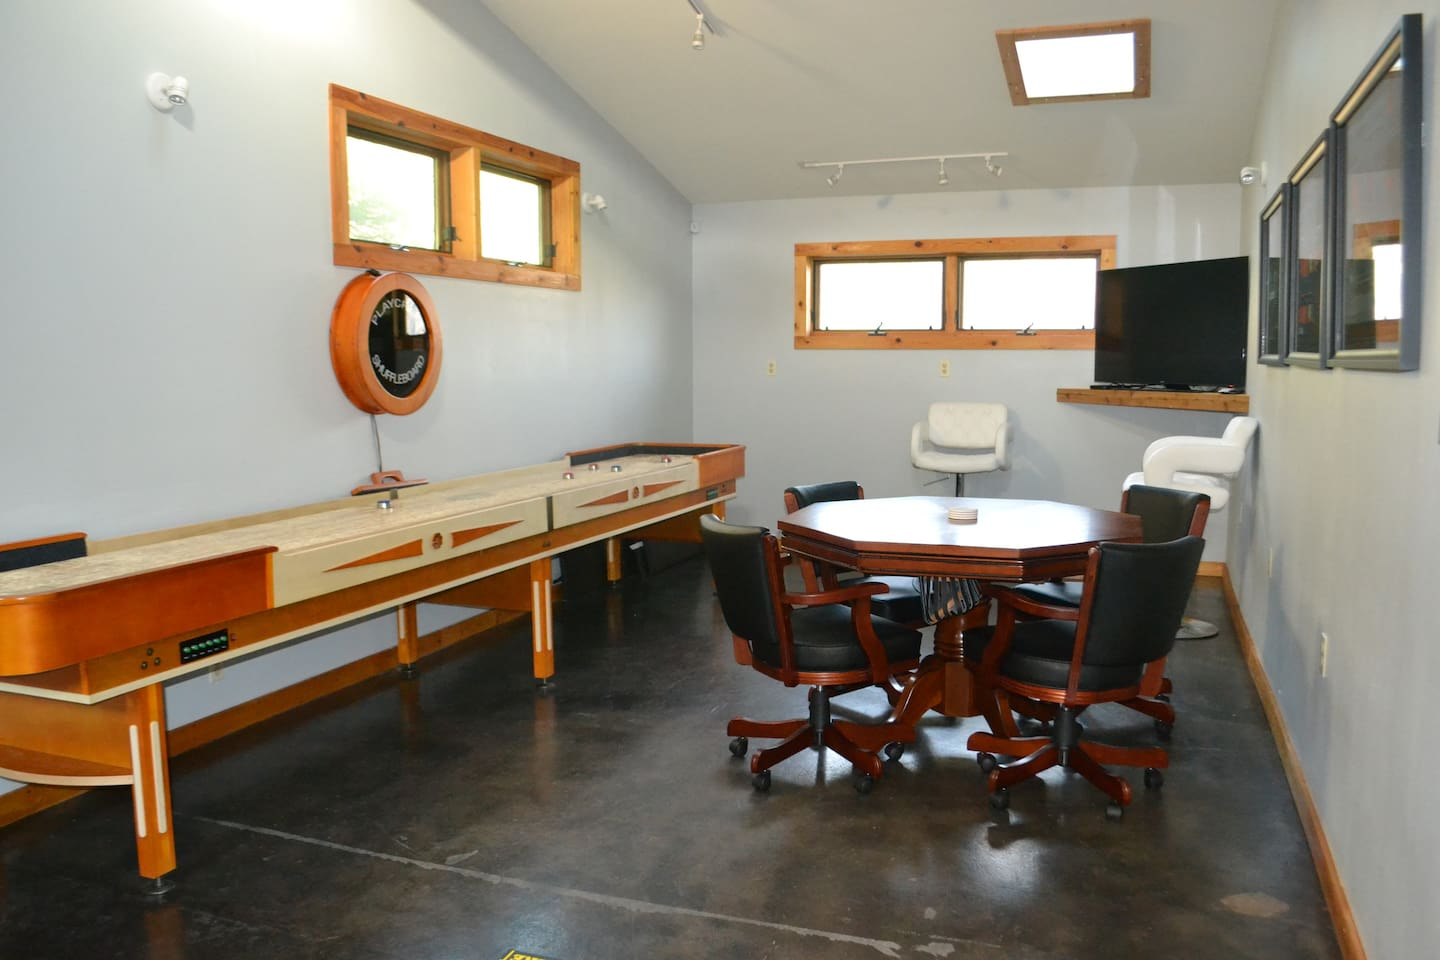 Gameroom- equipped with shuffleboard table, poker table, & darts